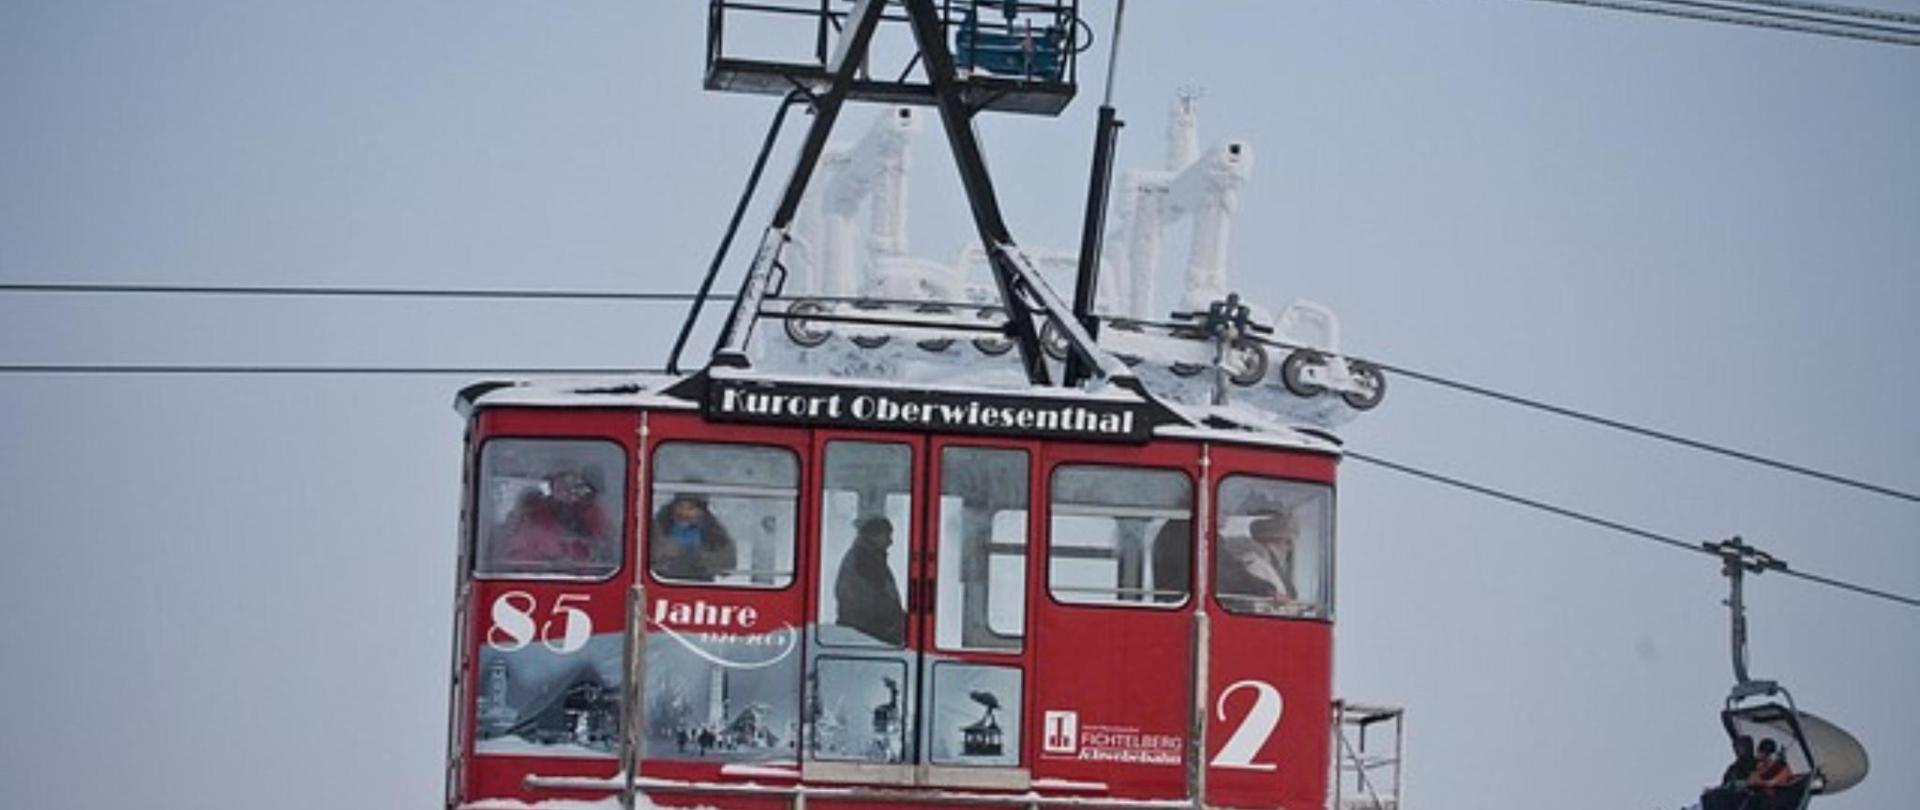 Winter Seilbahn OTHAL.jpg